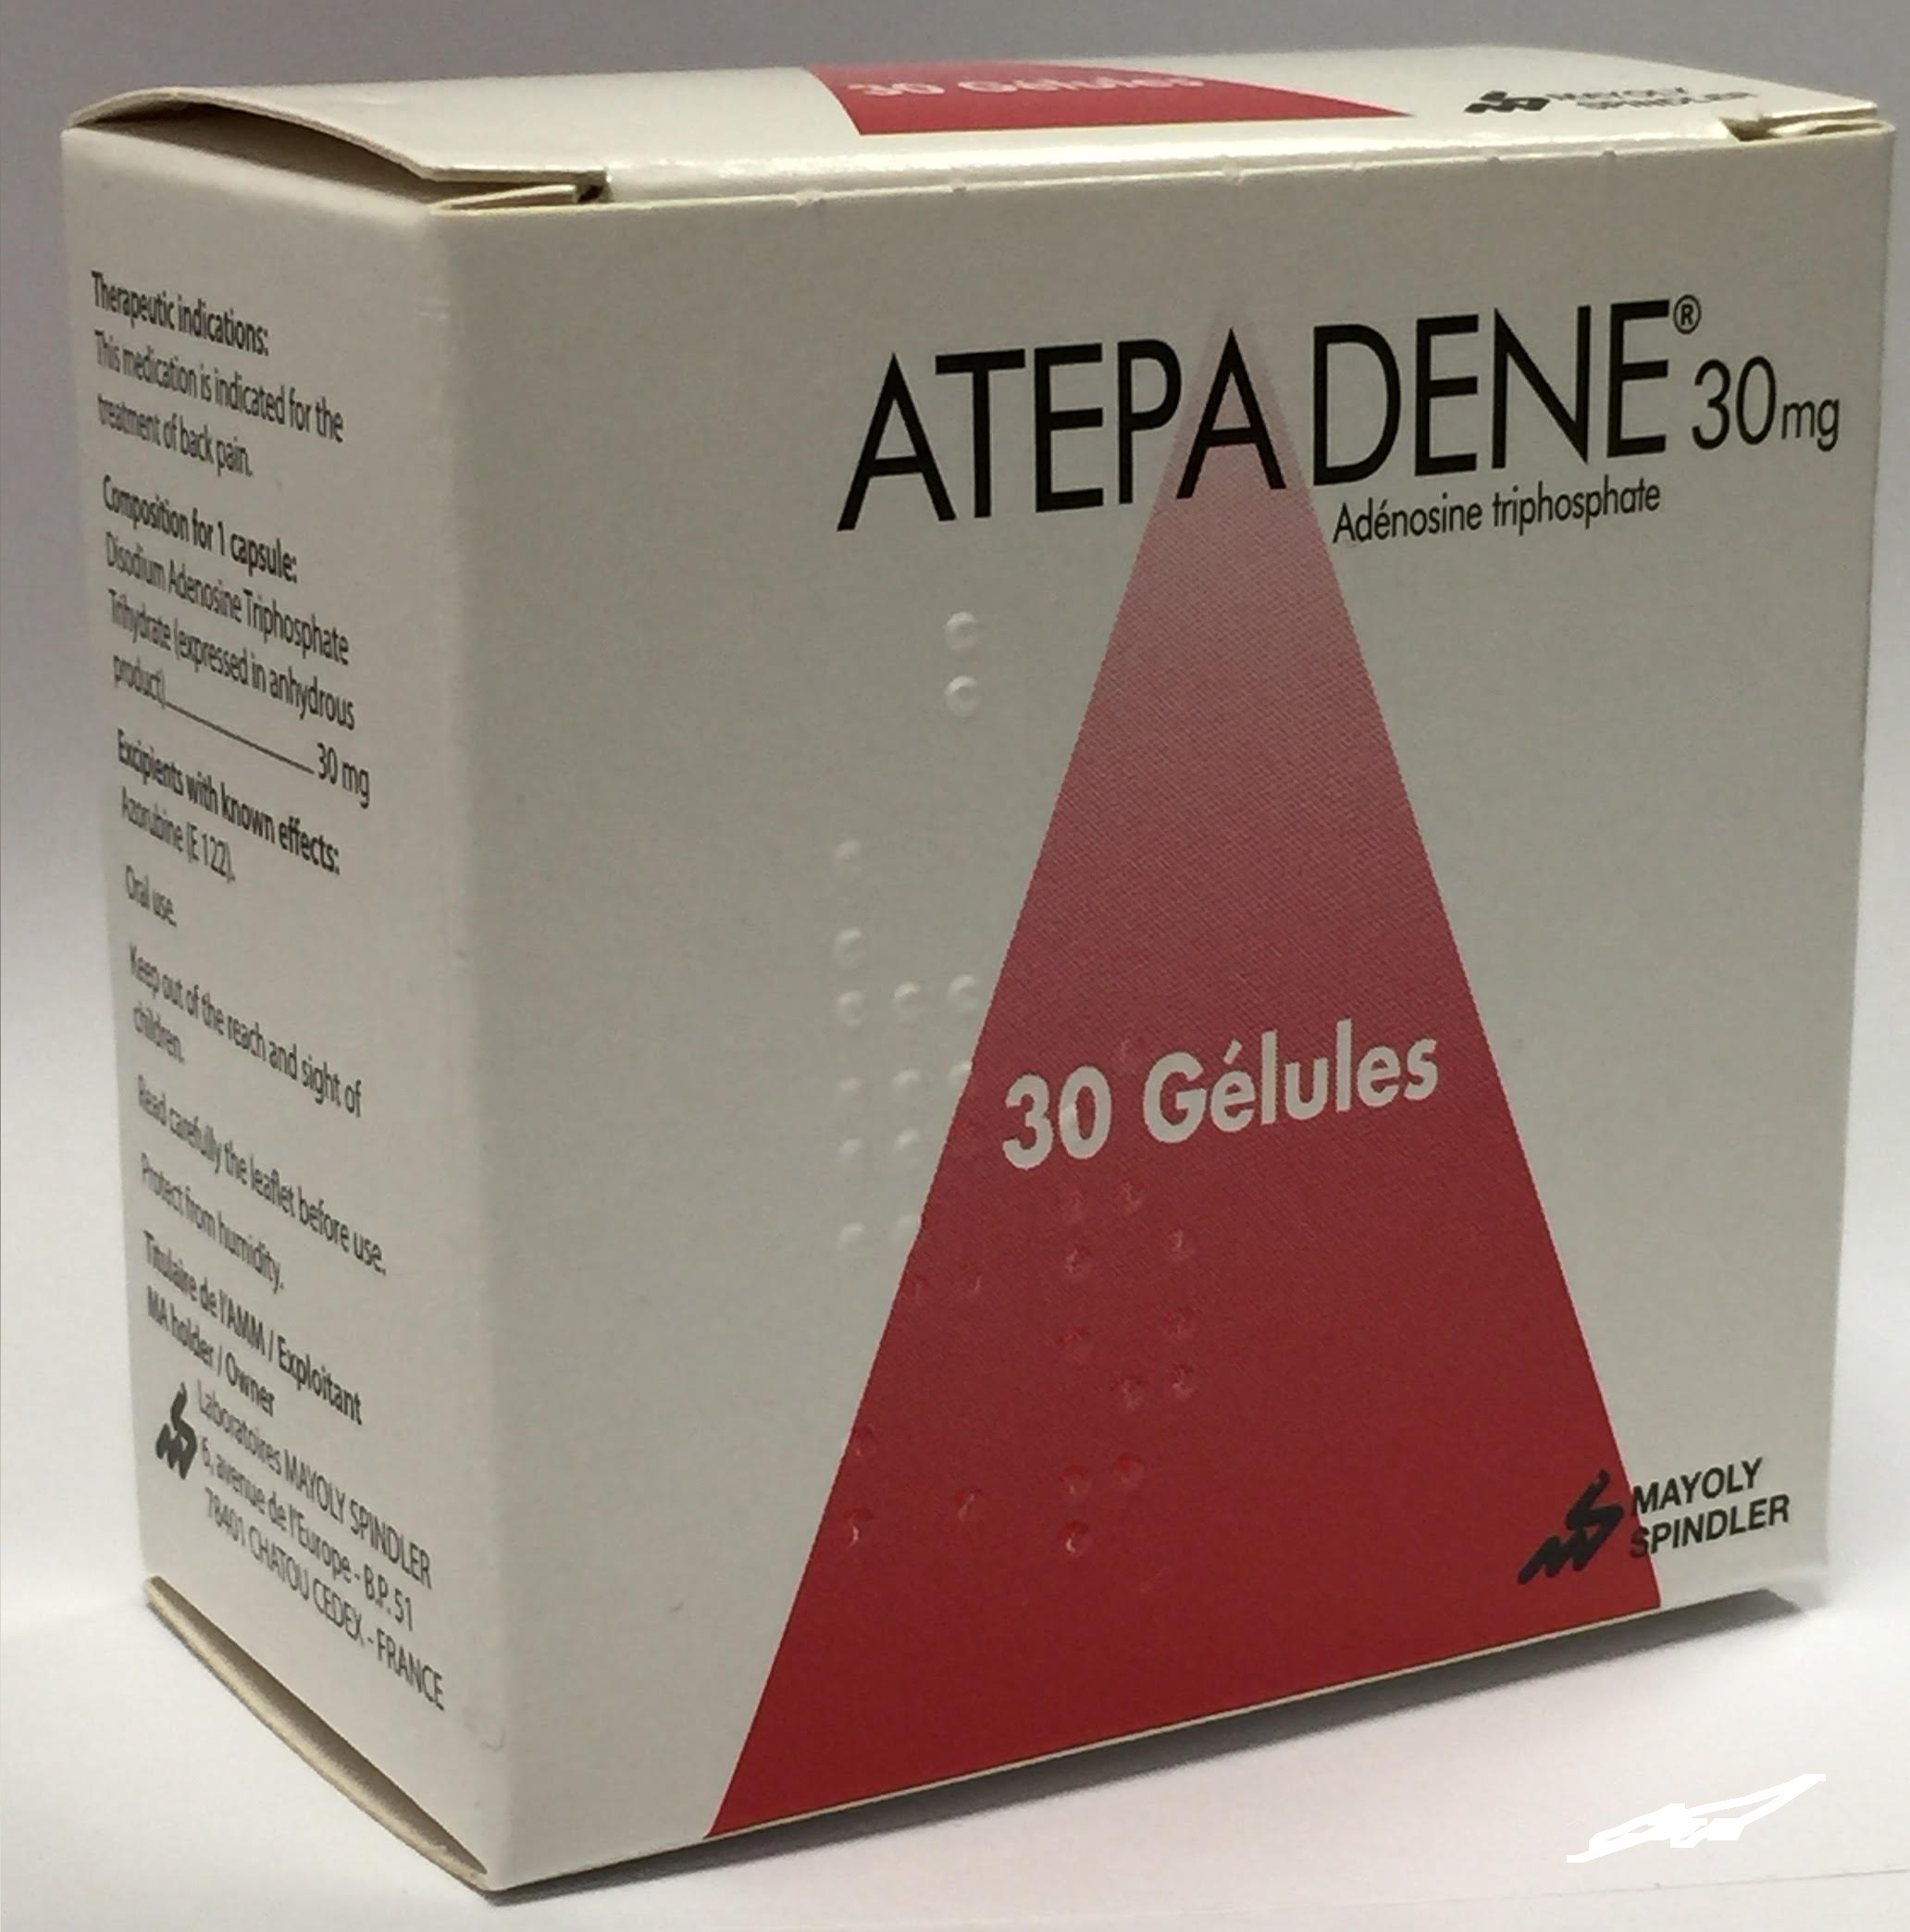 Atepadene 30 mg - Mayoly Spindler